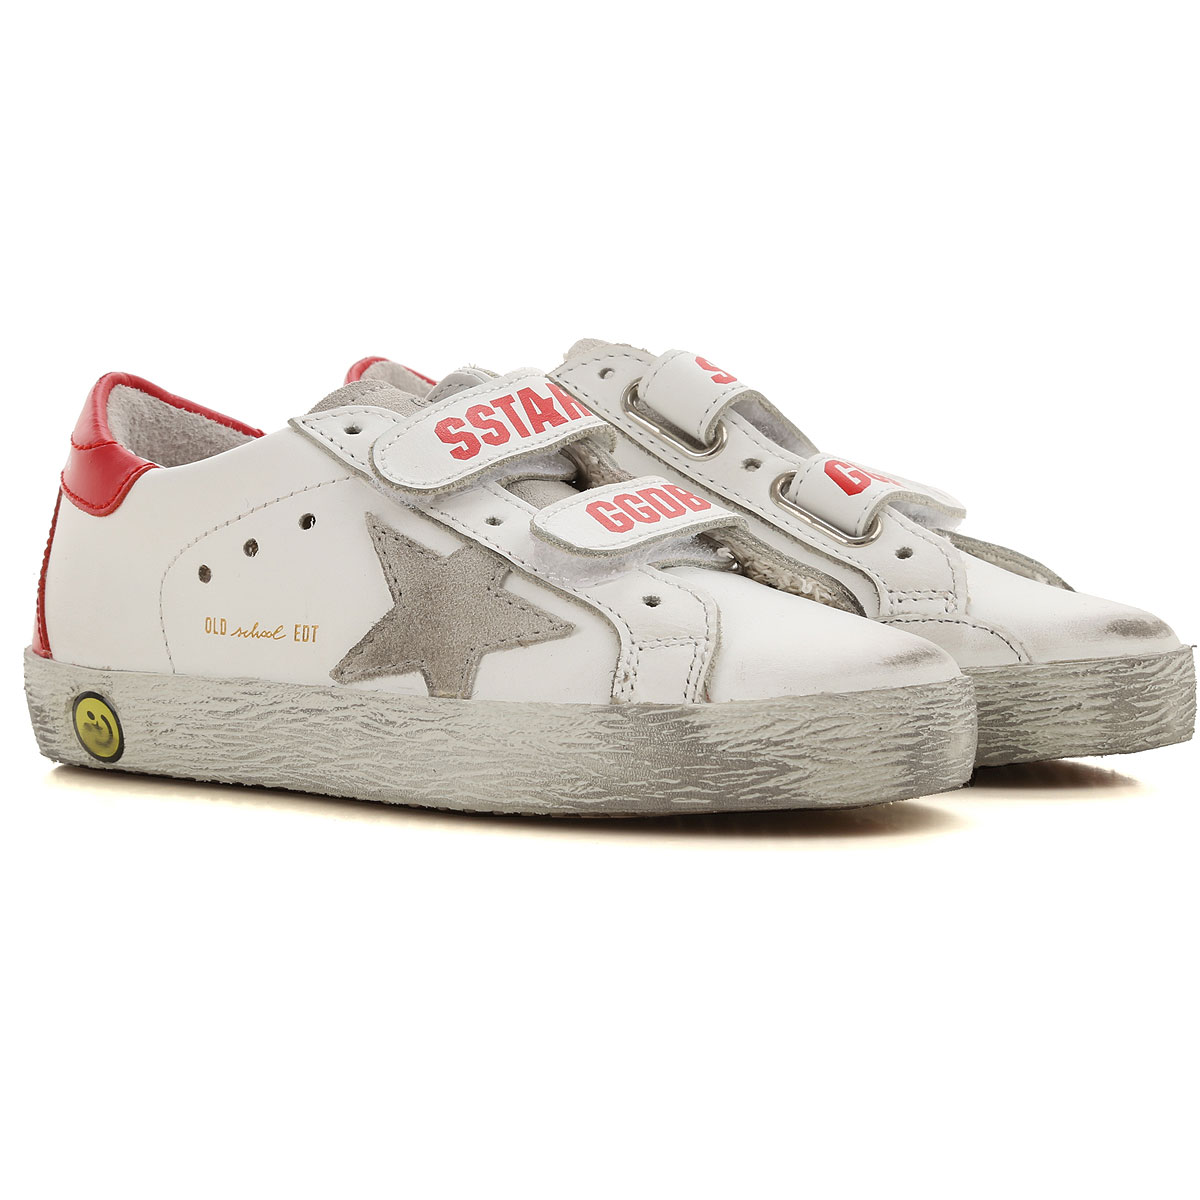 Image of Golden Goose Sneakers, White, Calf Leather, 2017, 24 25 26 27 28 29 30 31 32 33 34 35